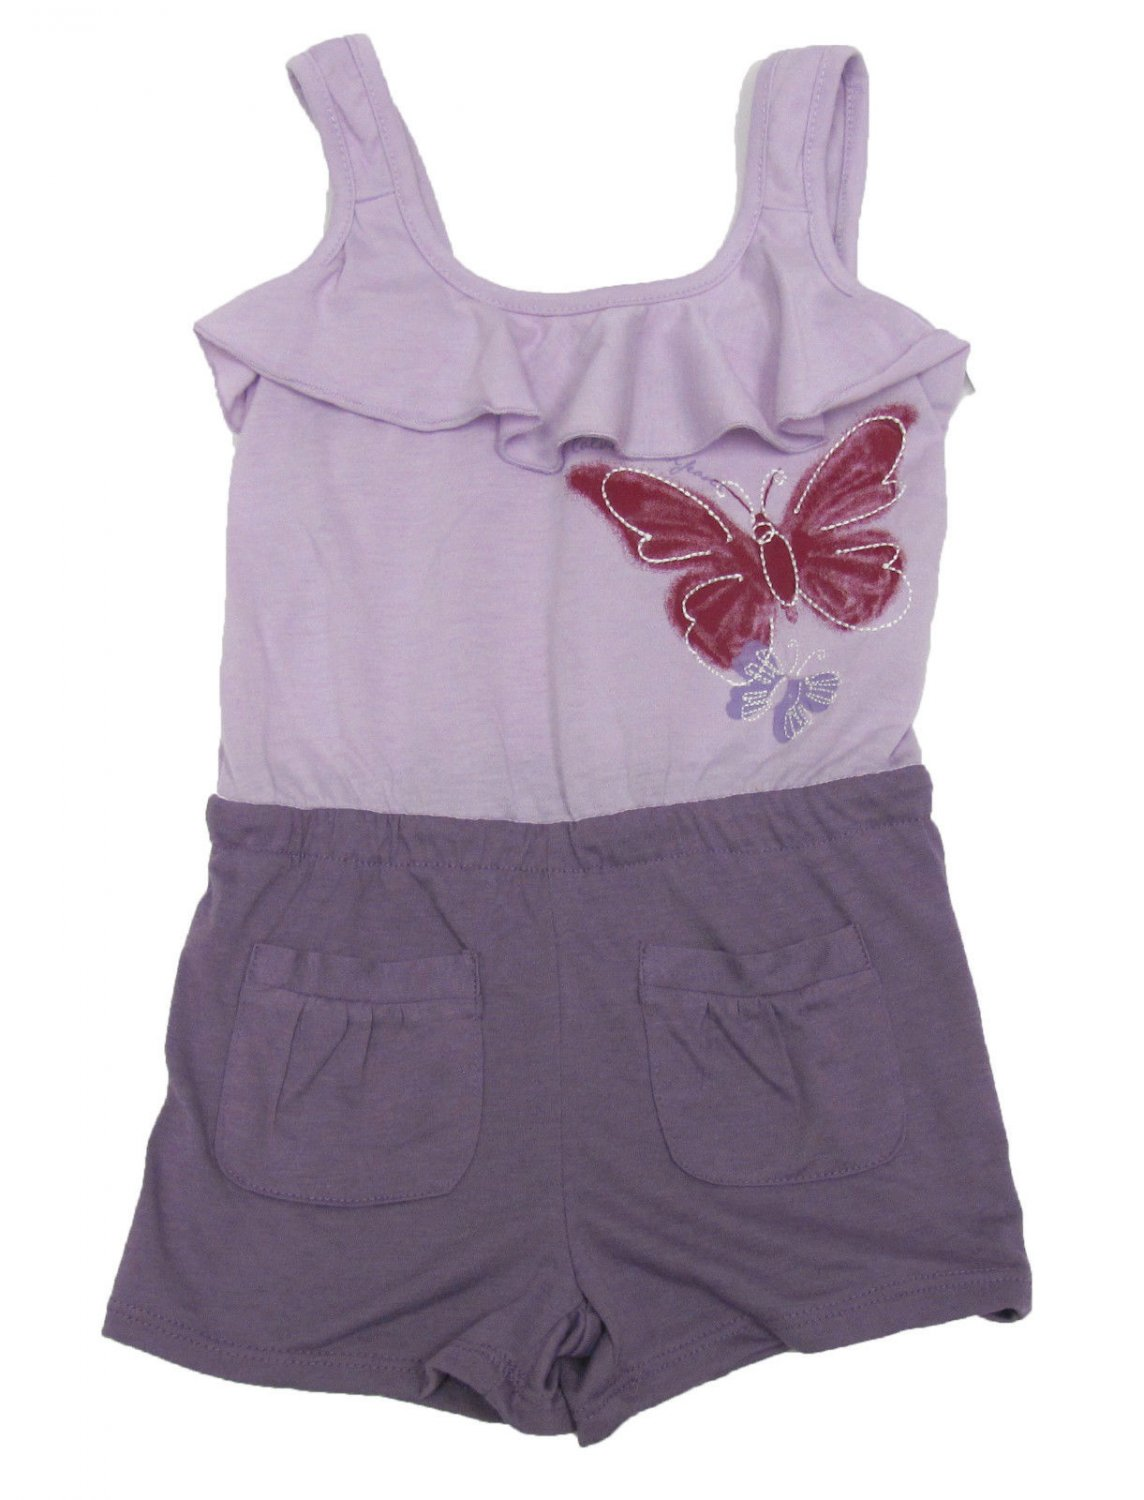 Calvin Klein Jeans Girls 4T Romper Toddler Light Purple Butterfly One-Piece